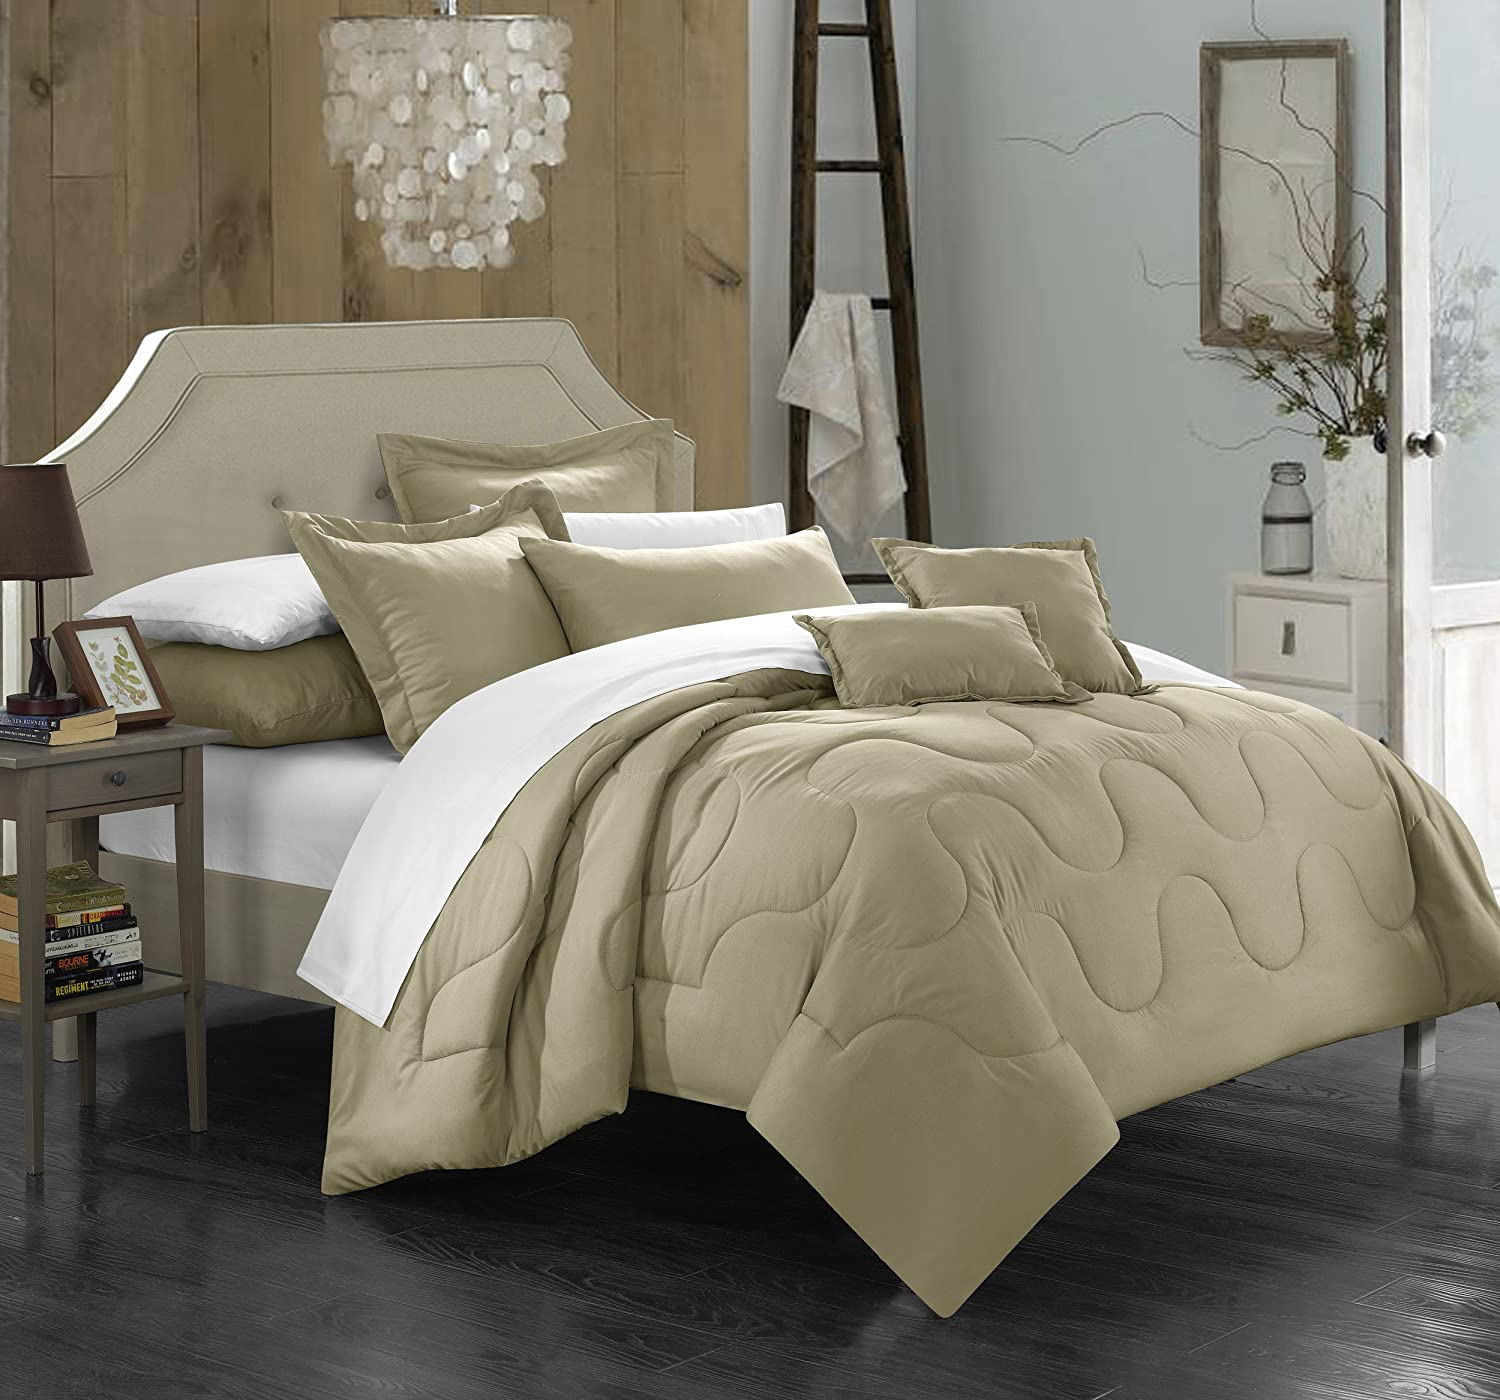 Chic Home Donna 5 Piece Comforter Set Minimalist Solid Color Design with Pillows Shams, Twin Taupe